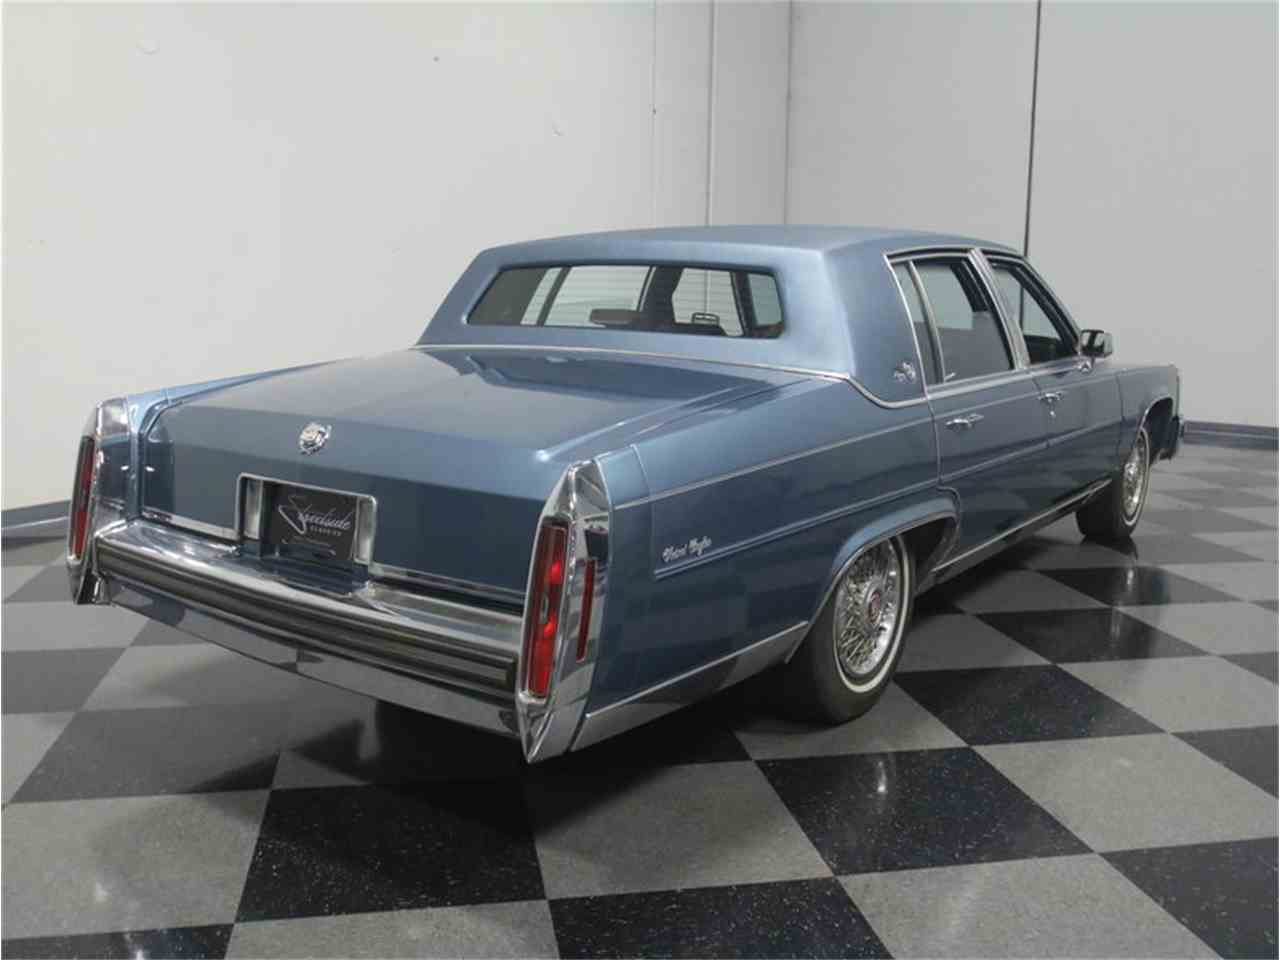 Large Picture of '86 Cadillac Fleetwood Brougham located in Lithia Springs Georgia - $8,995.00 Offered by Streetside Classics - Atlanta - LHHW